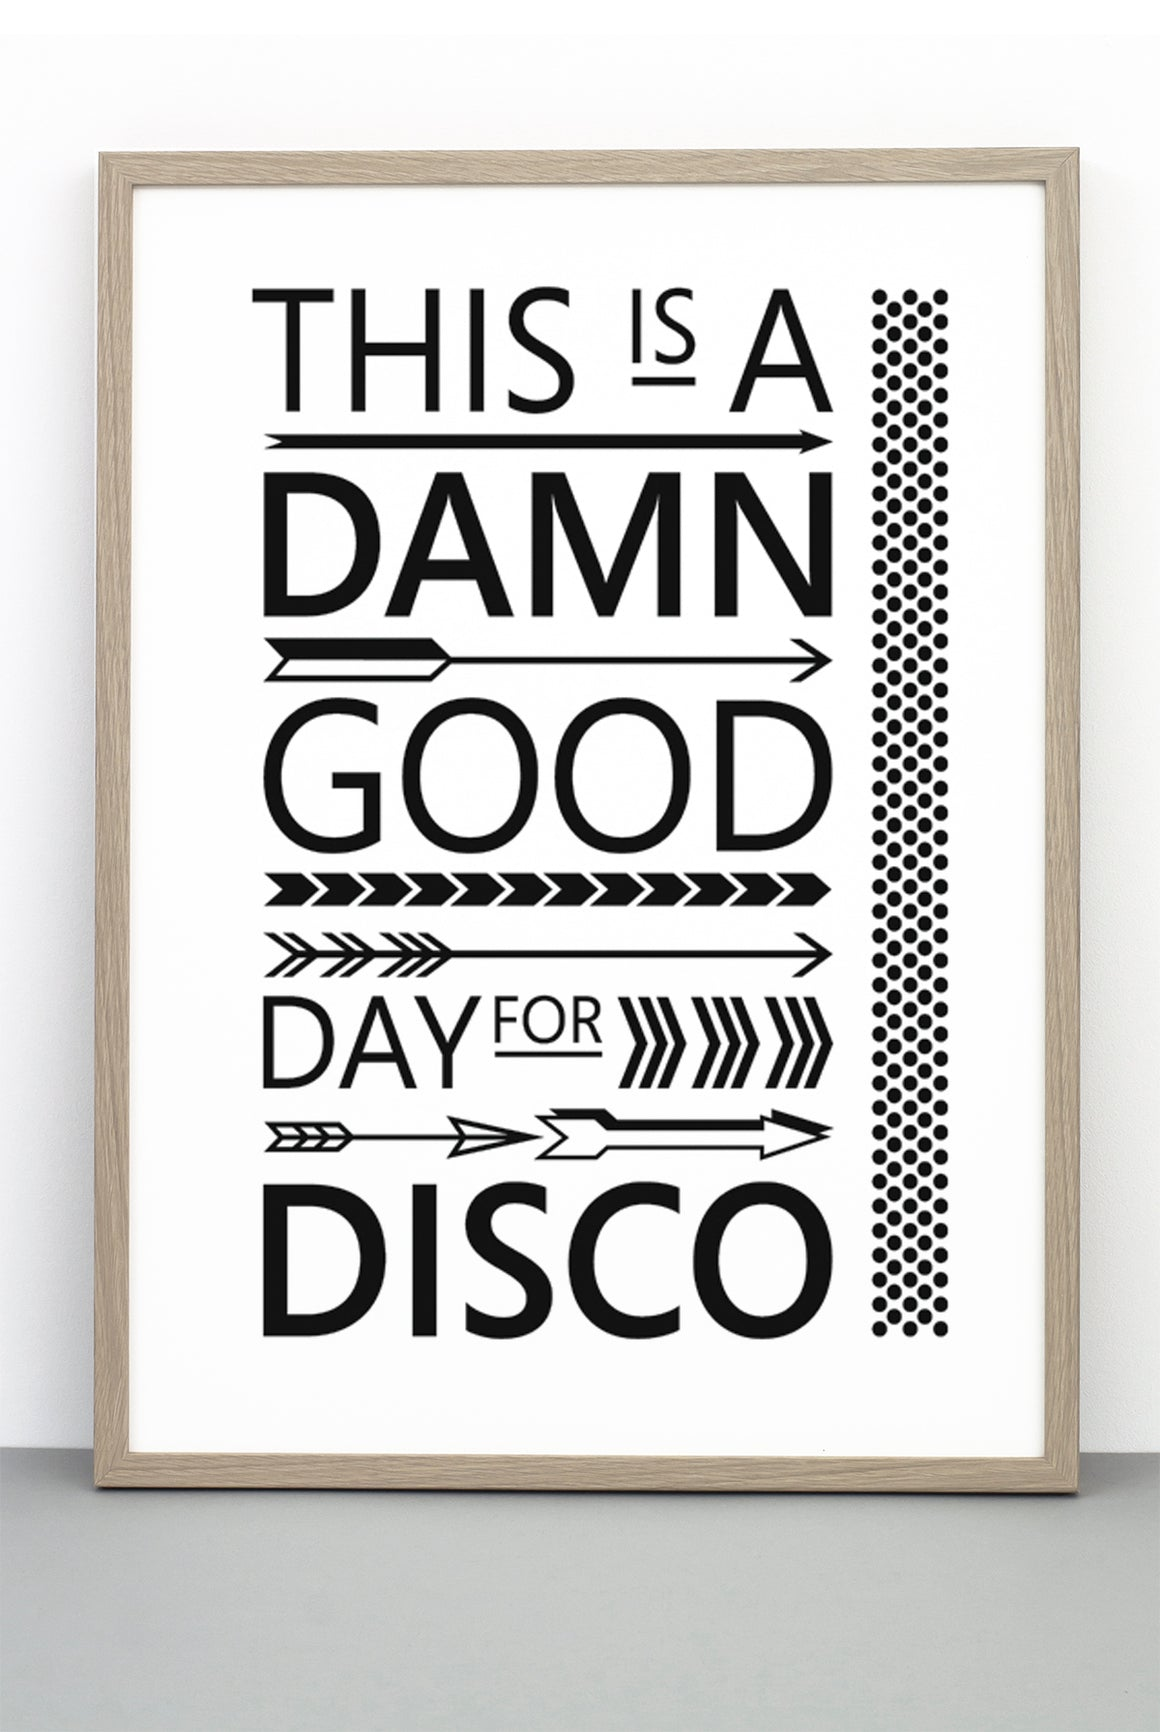 FLASHDANCE PRINT, A TYPOGRAPHIC BLACK AND WHITE HAPPY POSTER